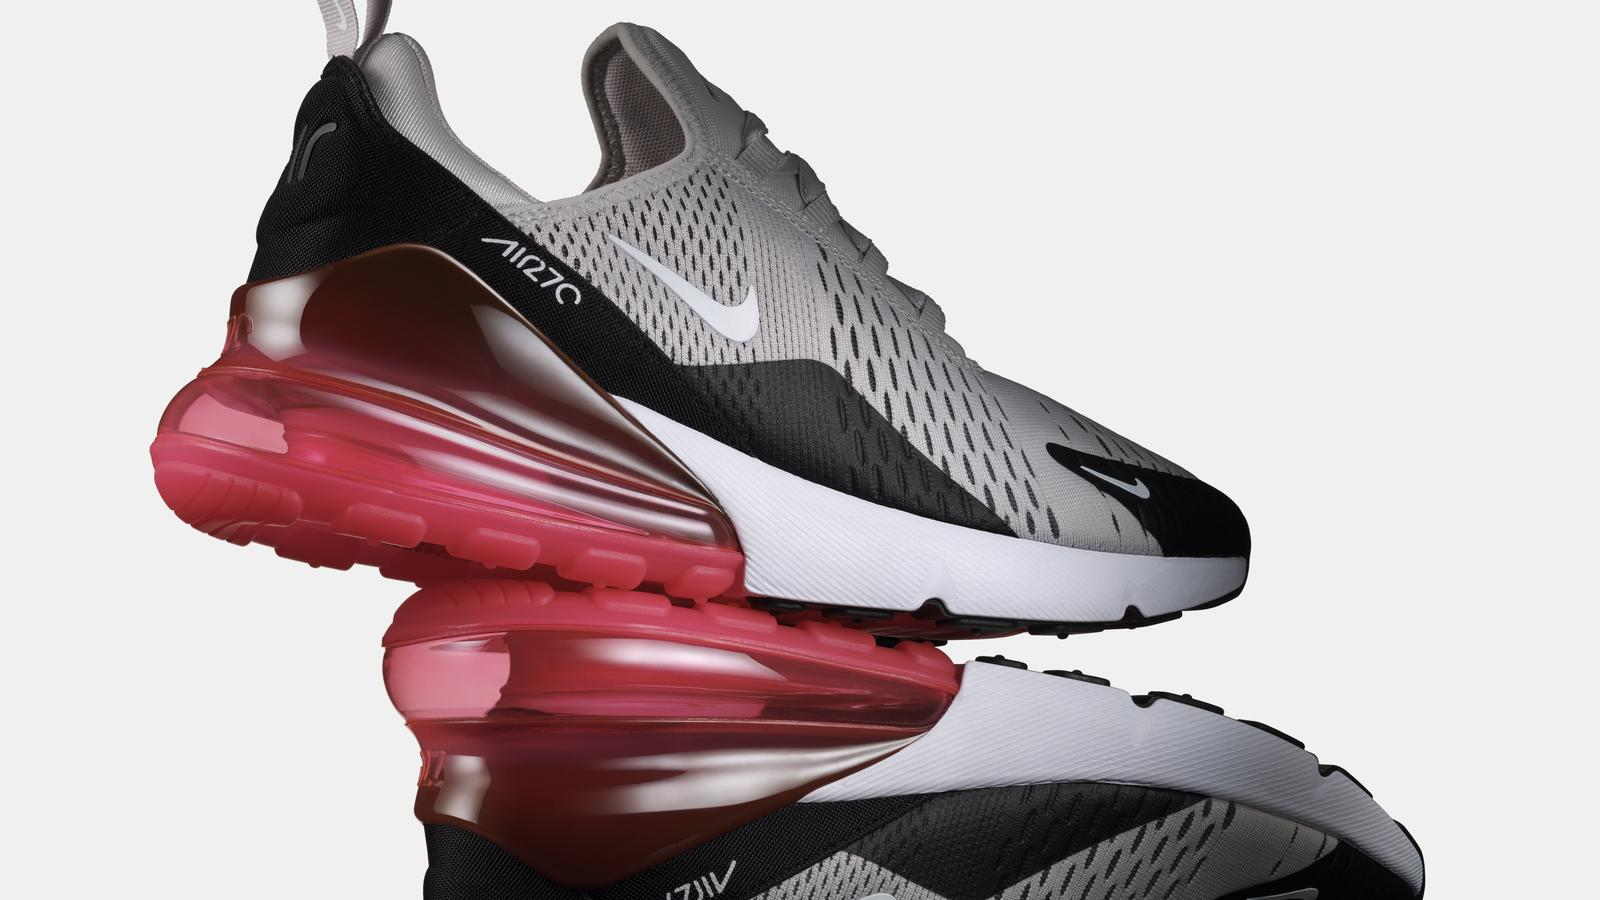 a478aea88913 The new Nike sneakers helping the swoosh back to its feet in America